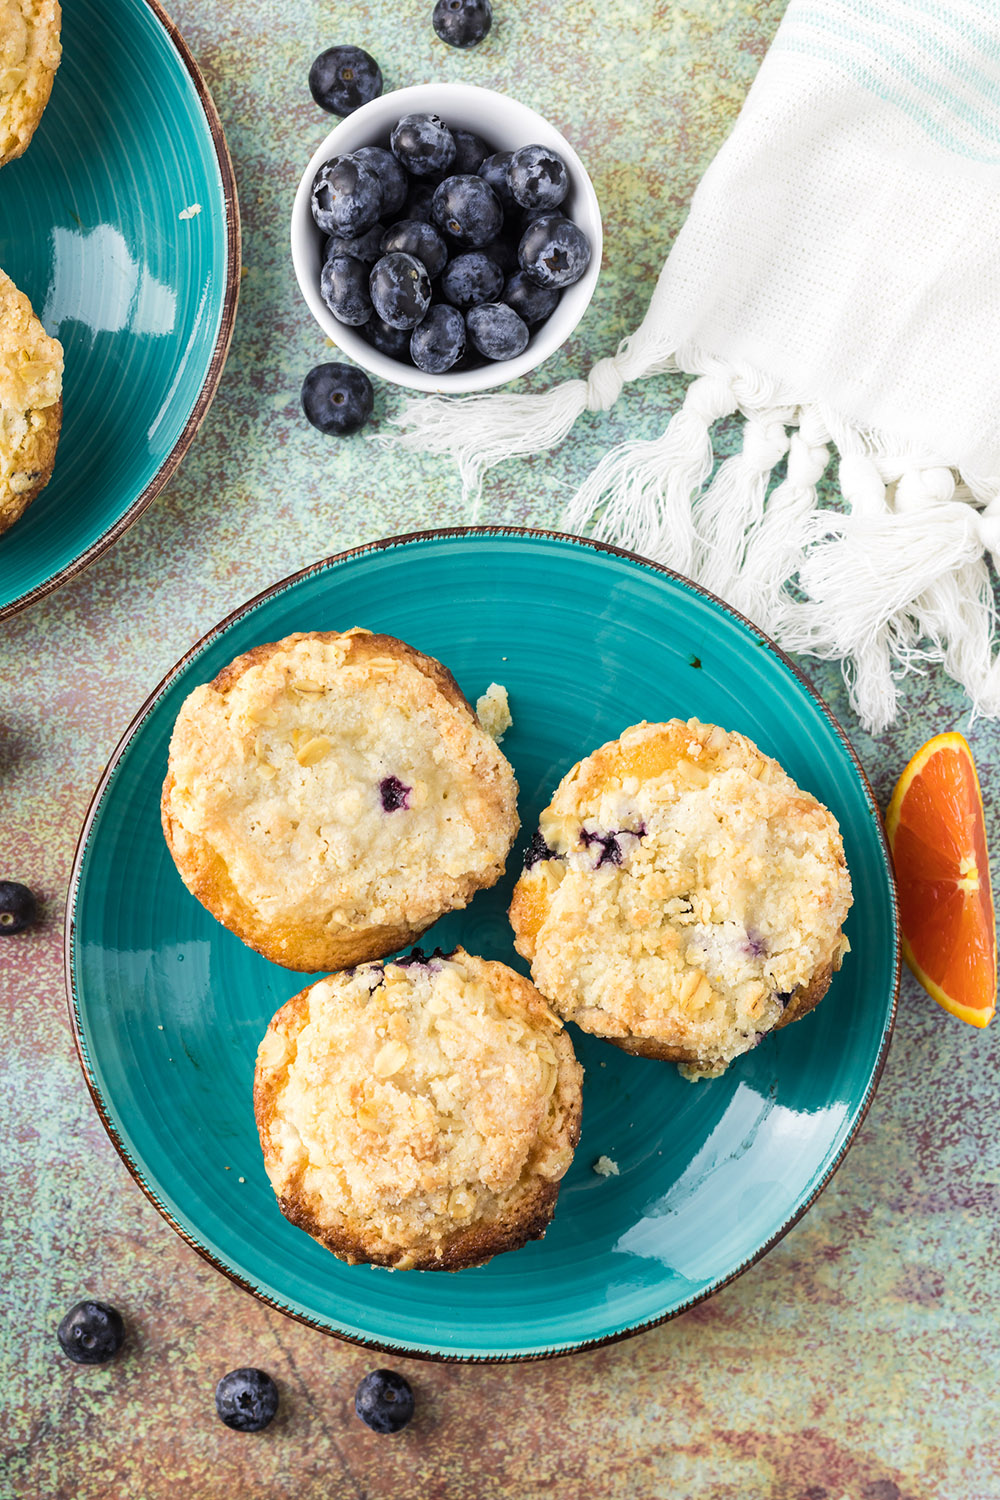 Overhead image of three blueberry muffins on a blue plate.